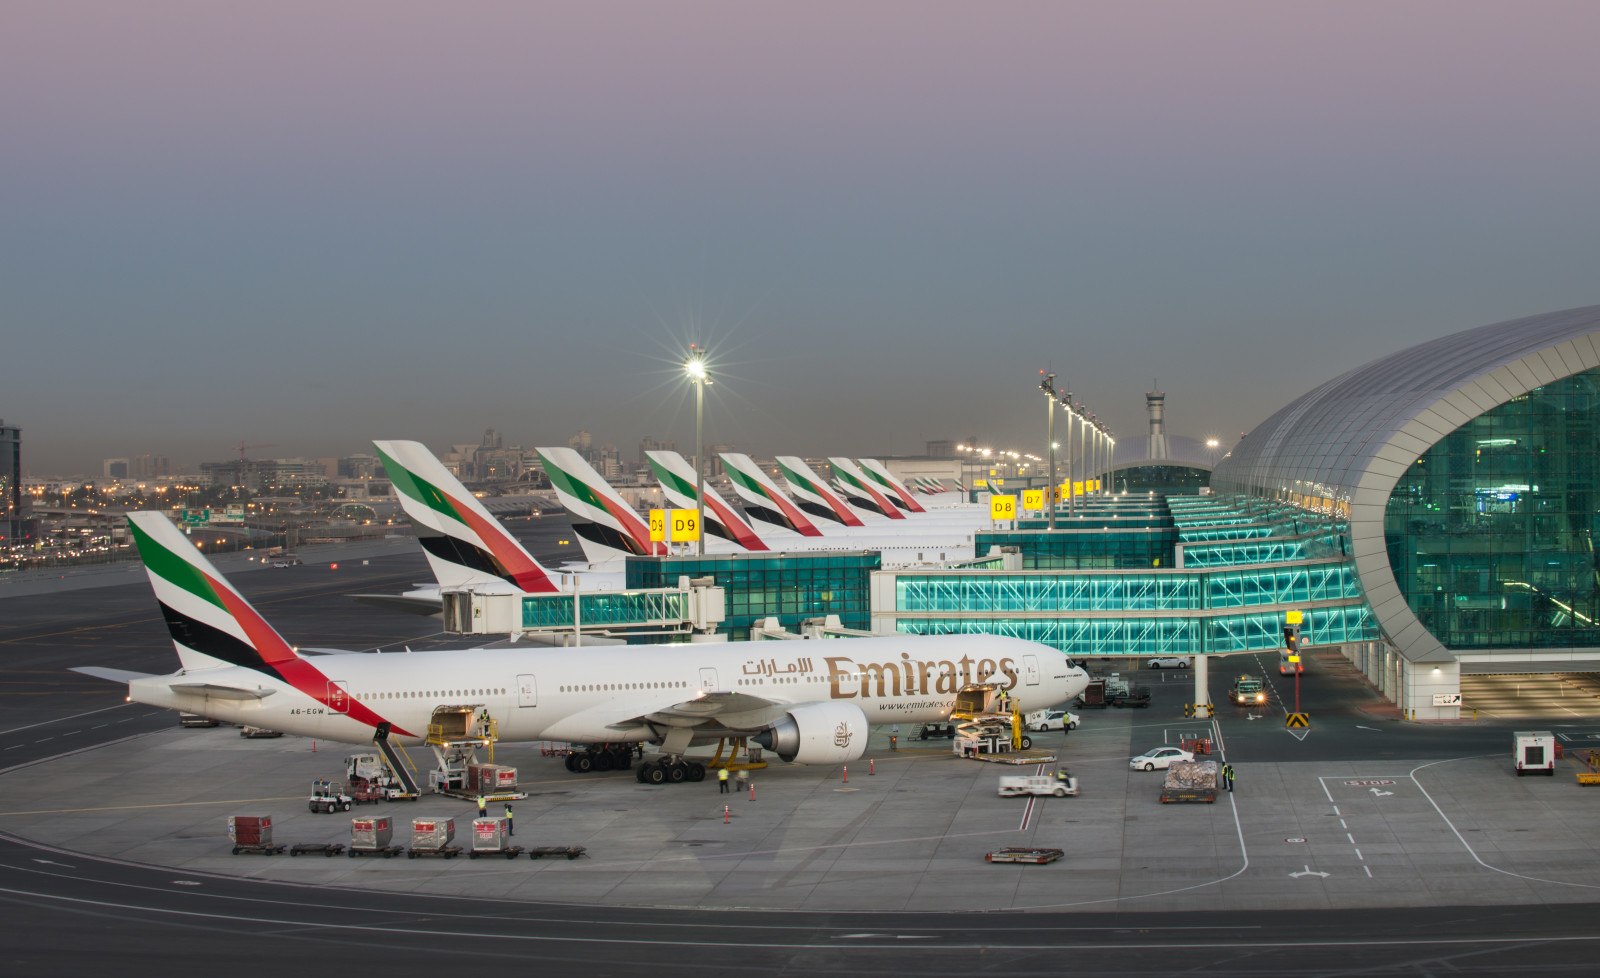 DUBAI AIRPORT STILL WORLD LEADER ON PASSENGER TRAFFIC